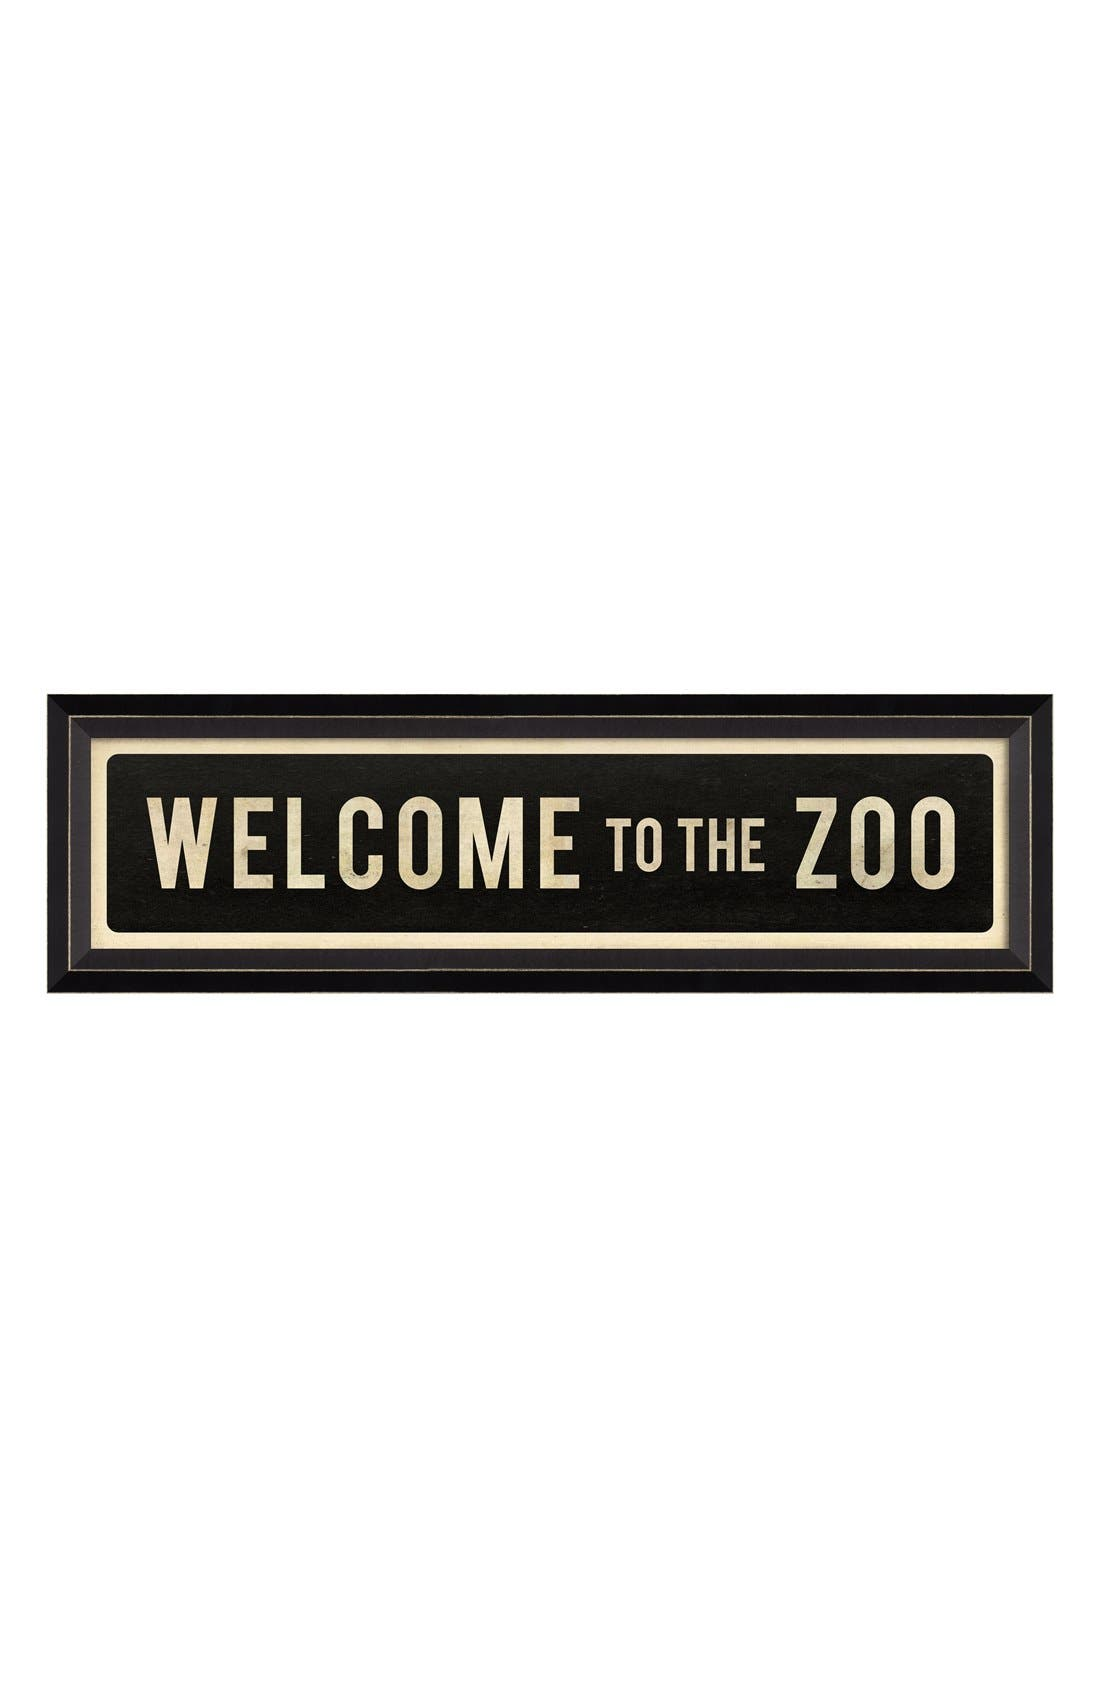 Alternate Image 1 Selected - Spicher and Company 'Welcome to the Zoo' Vintage Look Street Sign Artwork